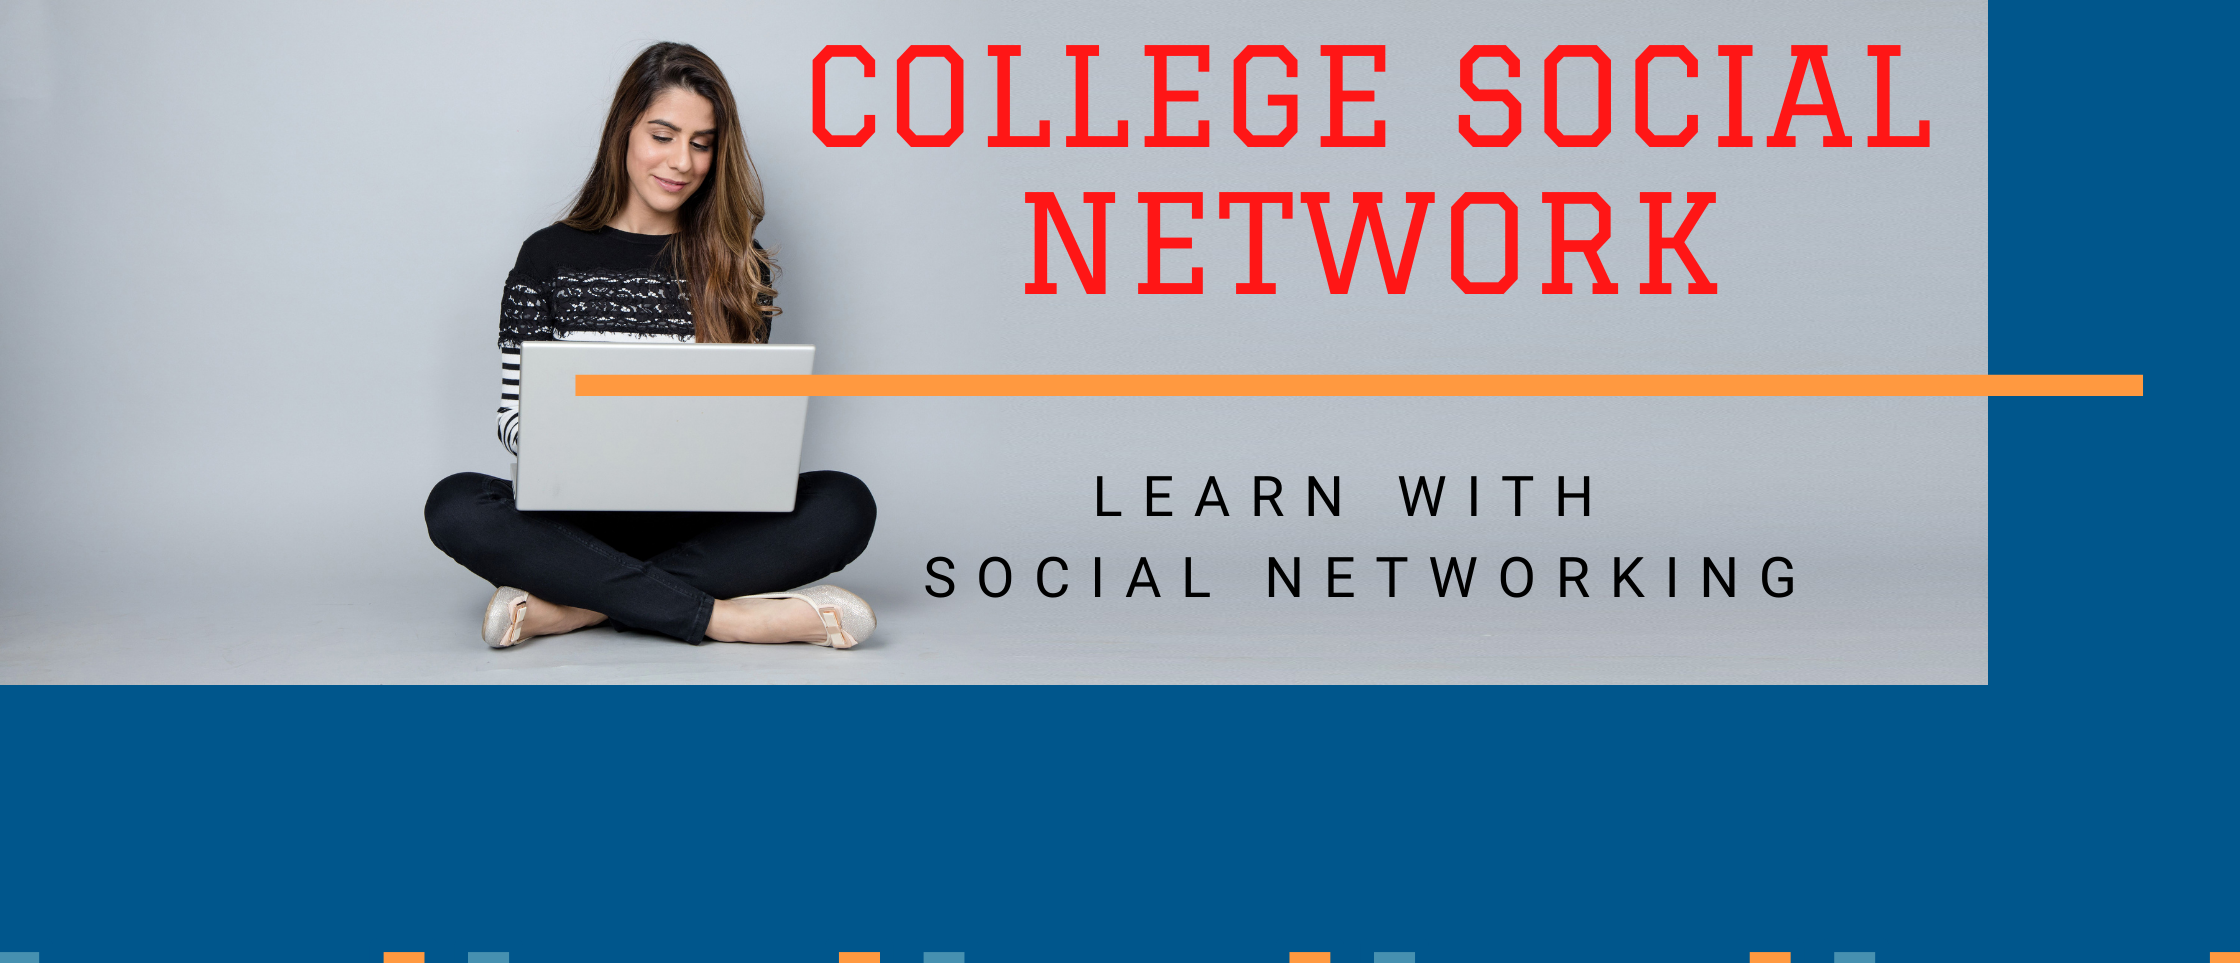 College Social Network